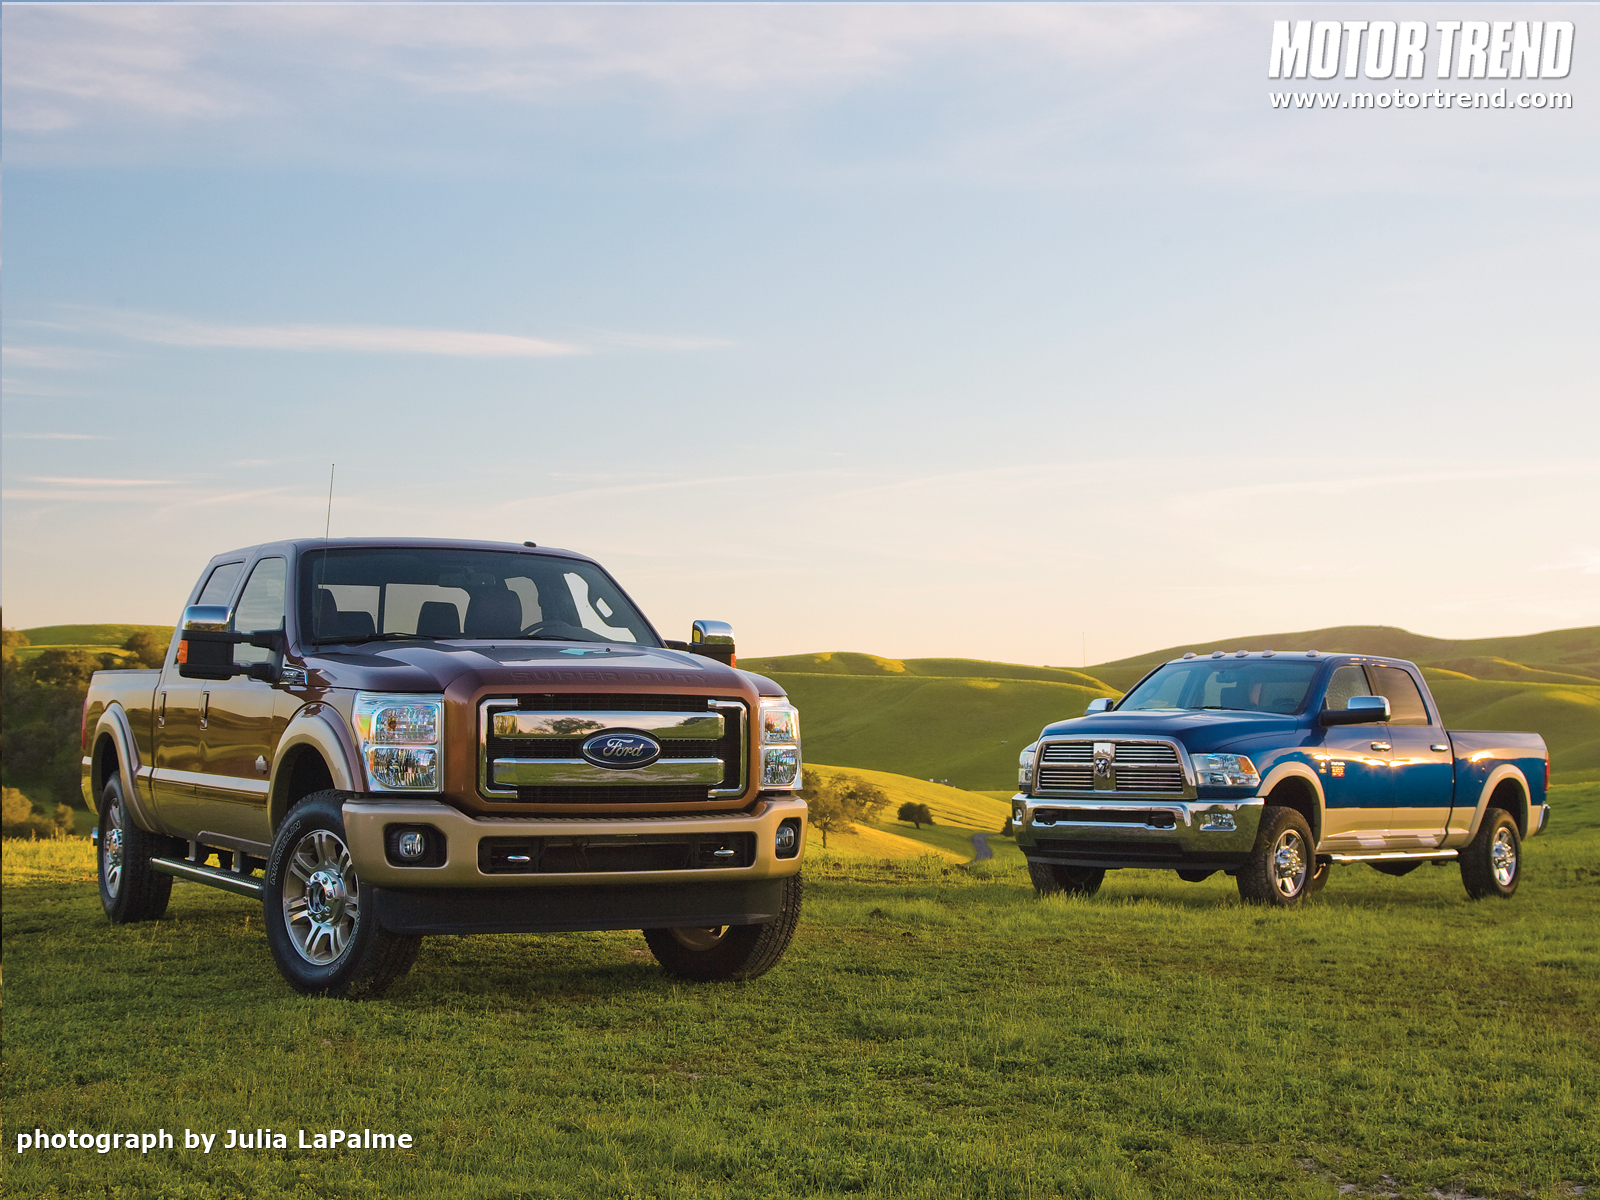 2011 Ford F-250 Super Duty and 2010 Ram 2500 Heavy Duty Wallpaper Gallery